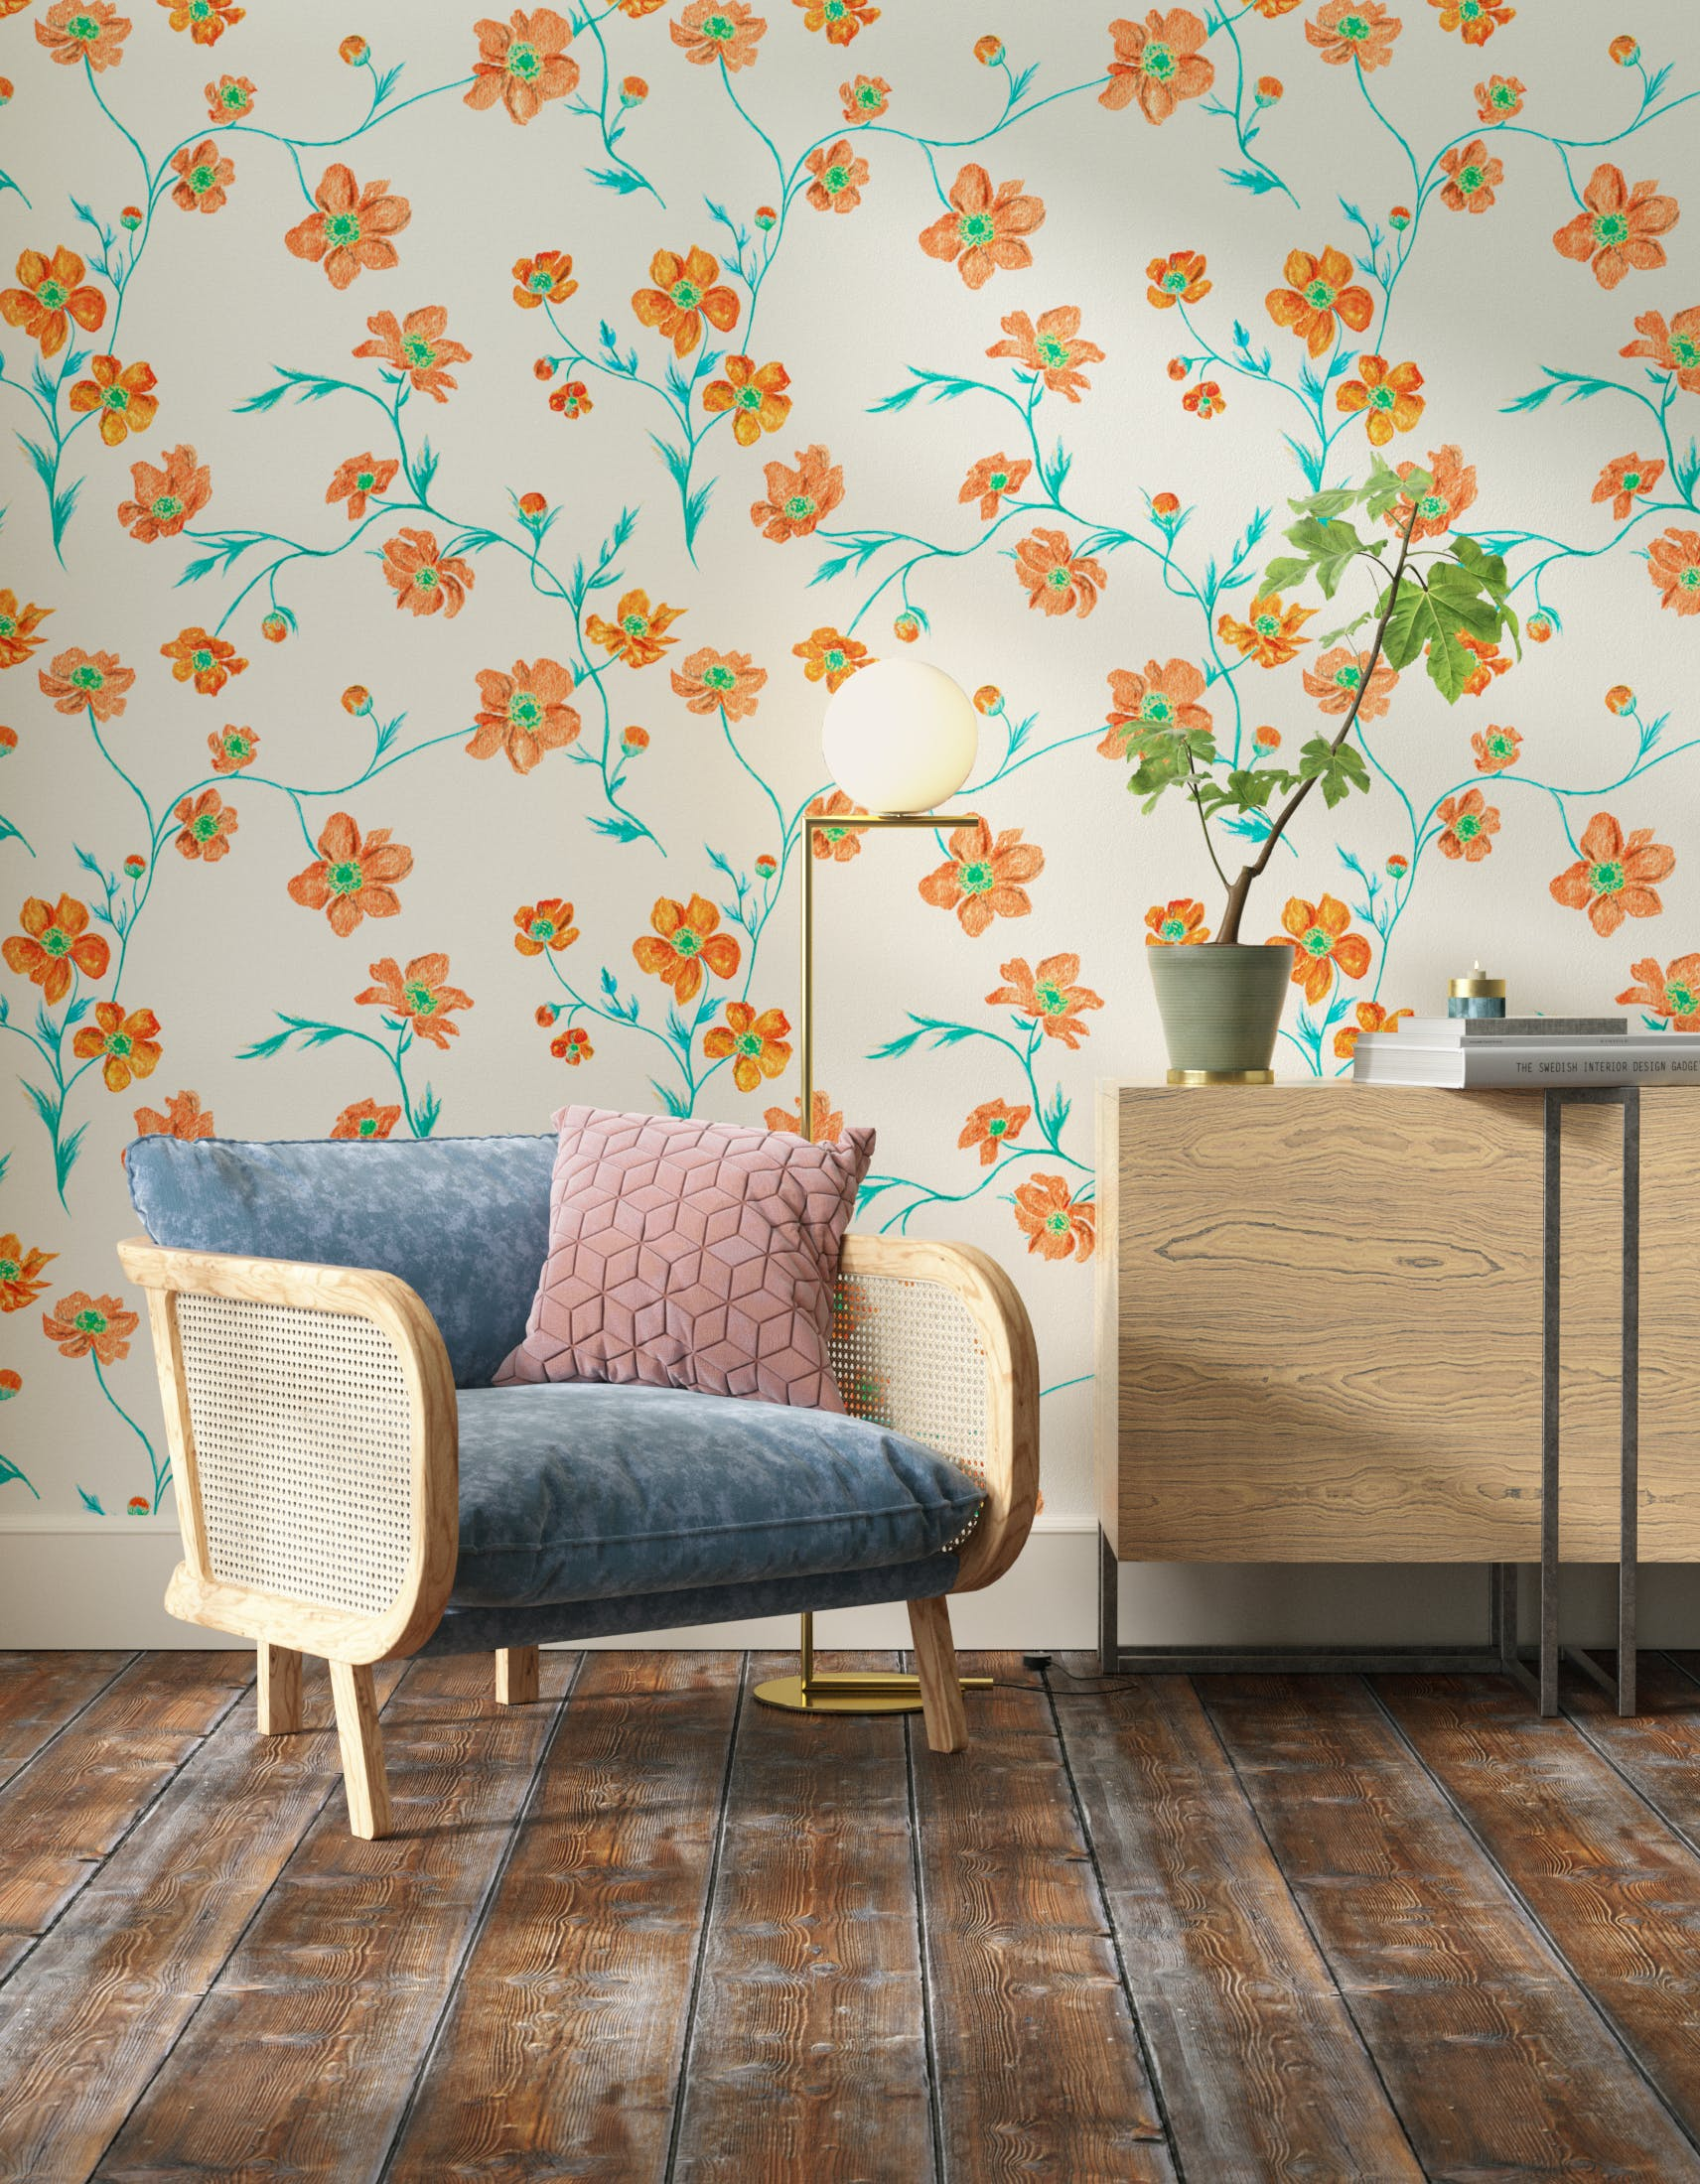 Living room decorated with Lick x Jenna Hewitt Anemone 02 orange floral wallpaper